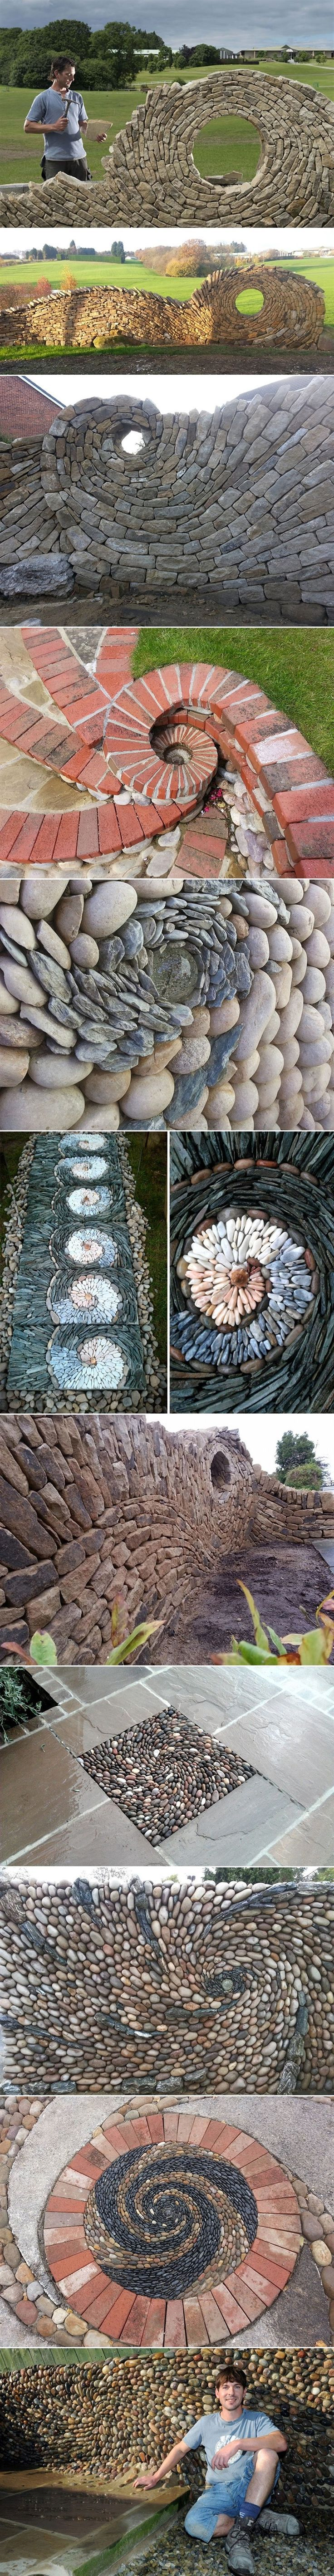 Pin by jojo on coole fotos pinterest gardens yards and garden ideas